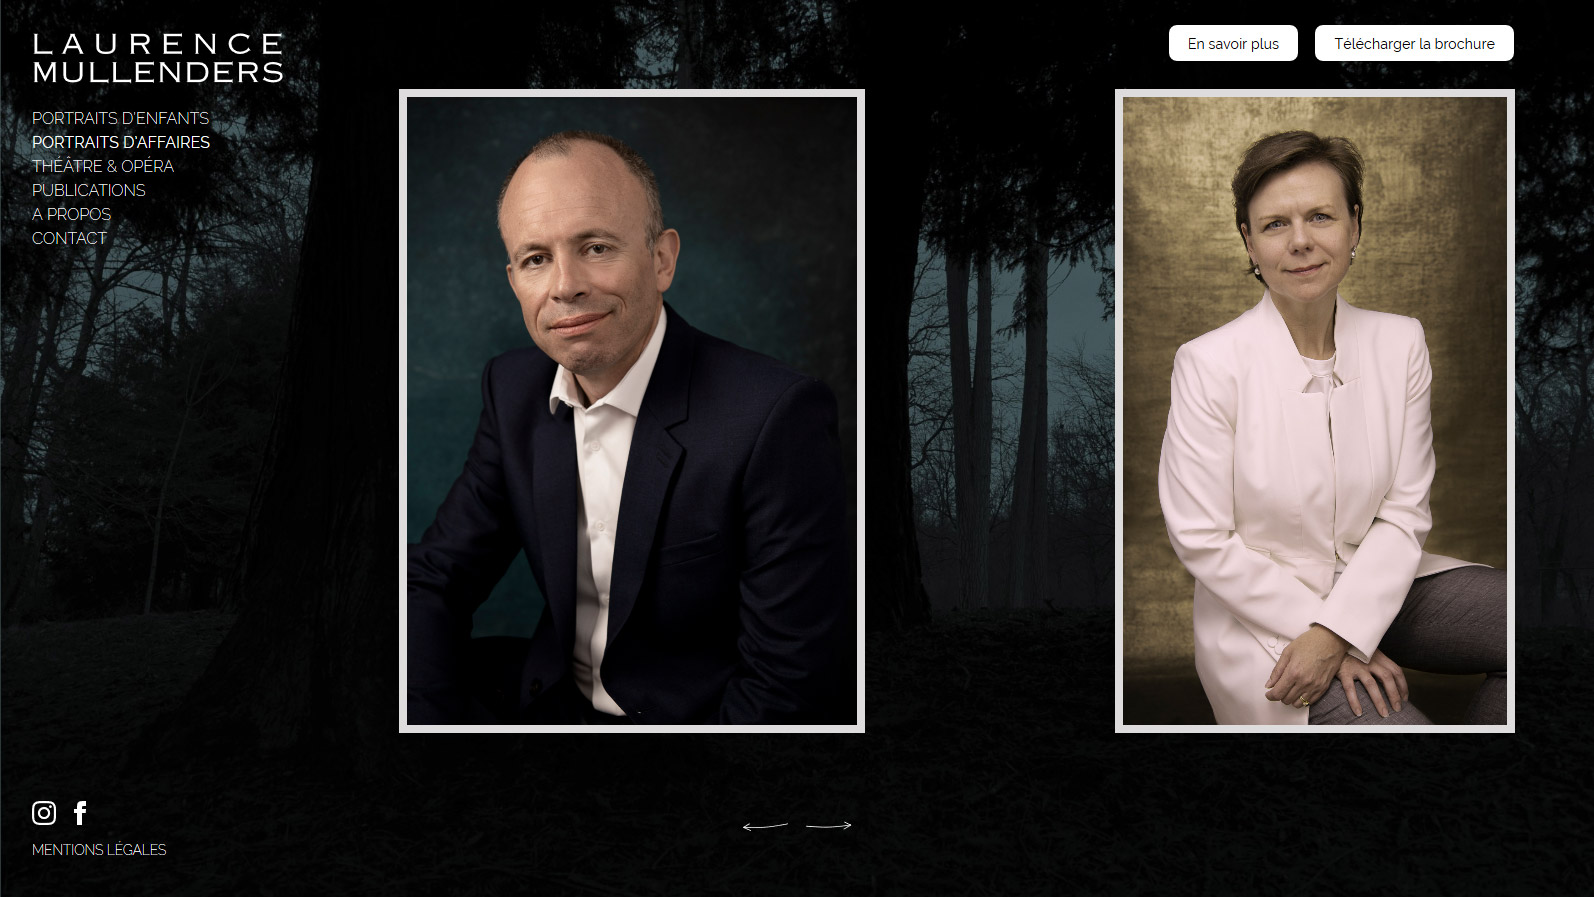 Page courante : portraits d'affaires